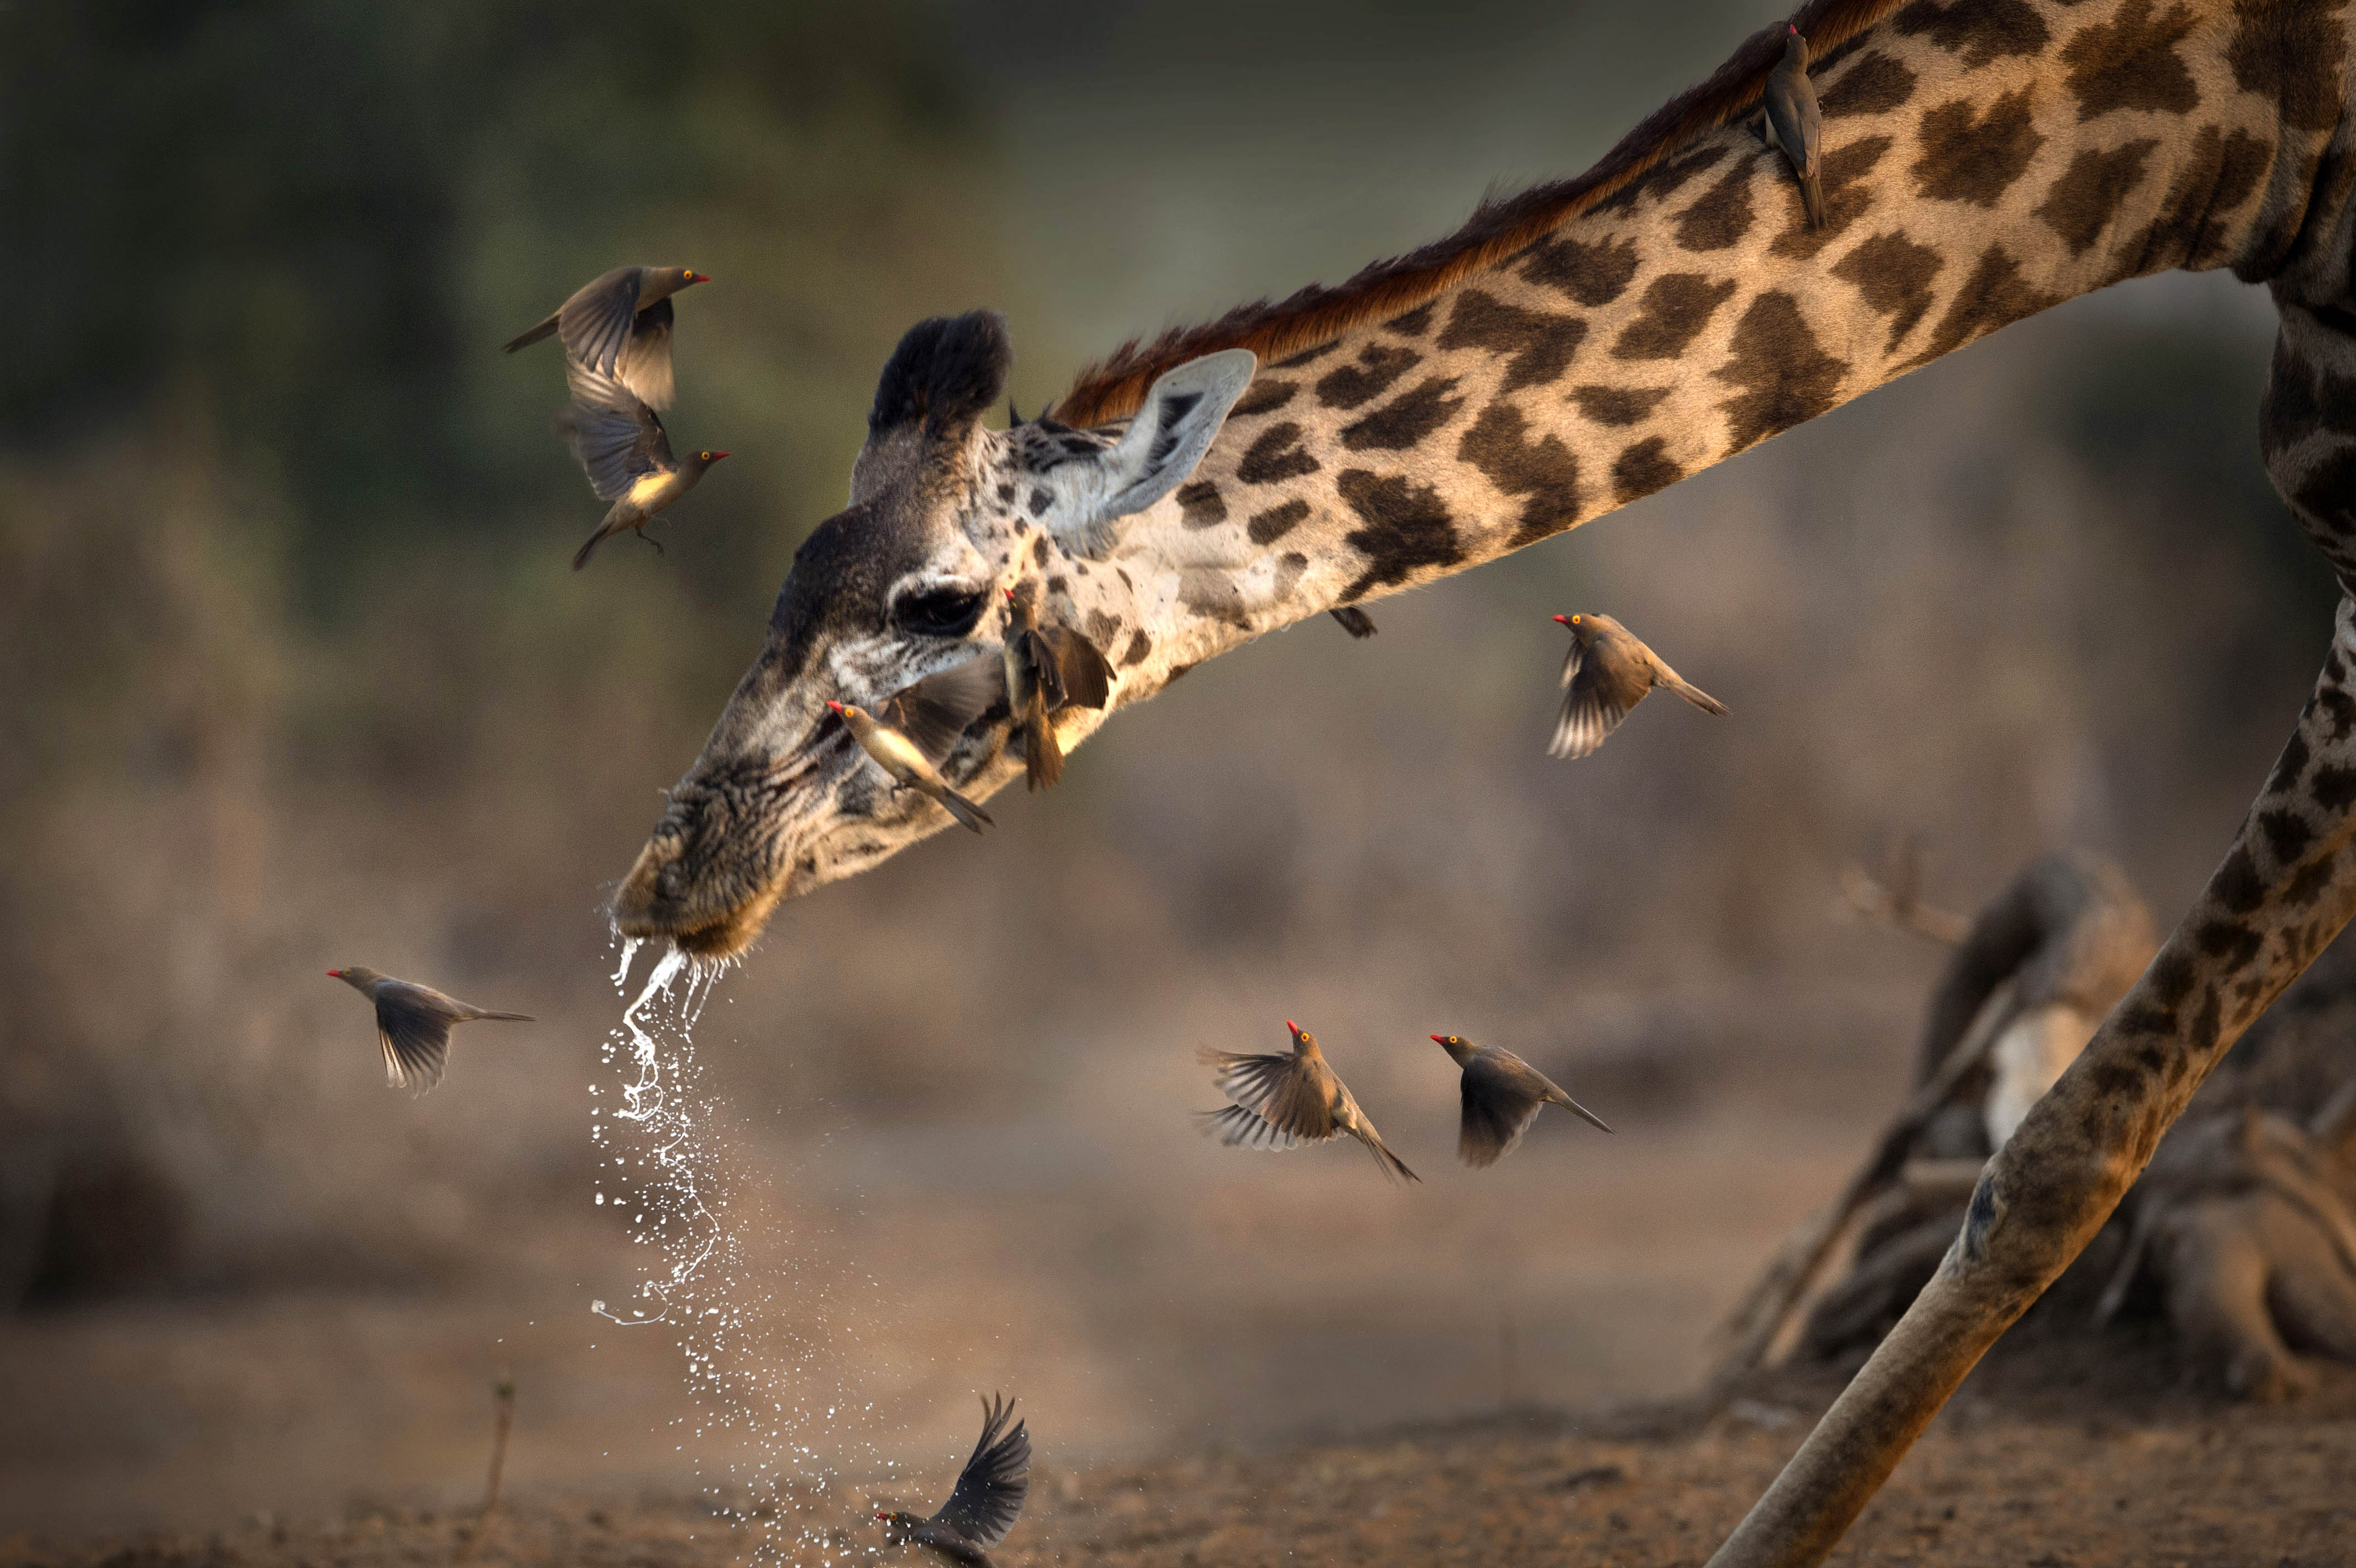 Bless You Giraffe Caught Sneezing Caters News Agency